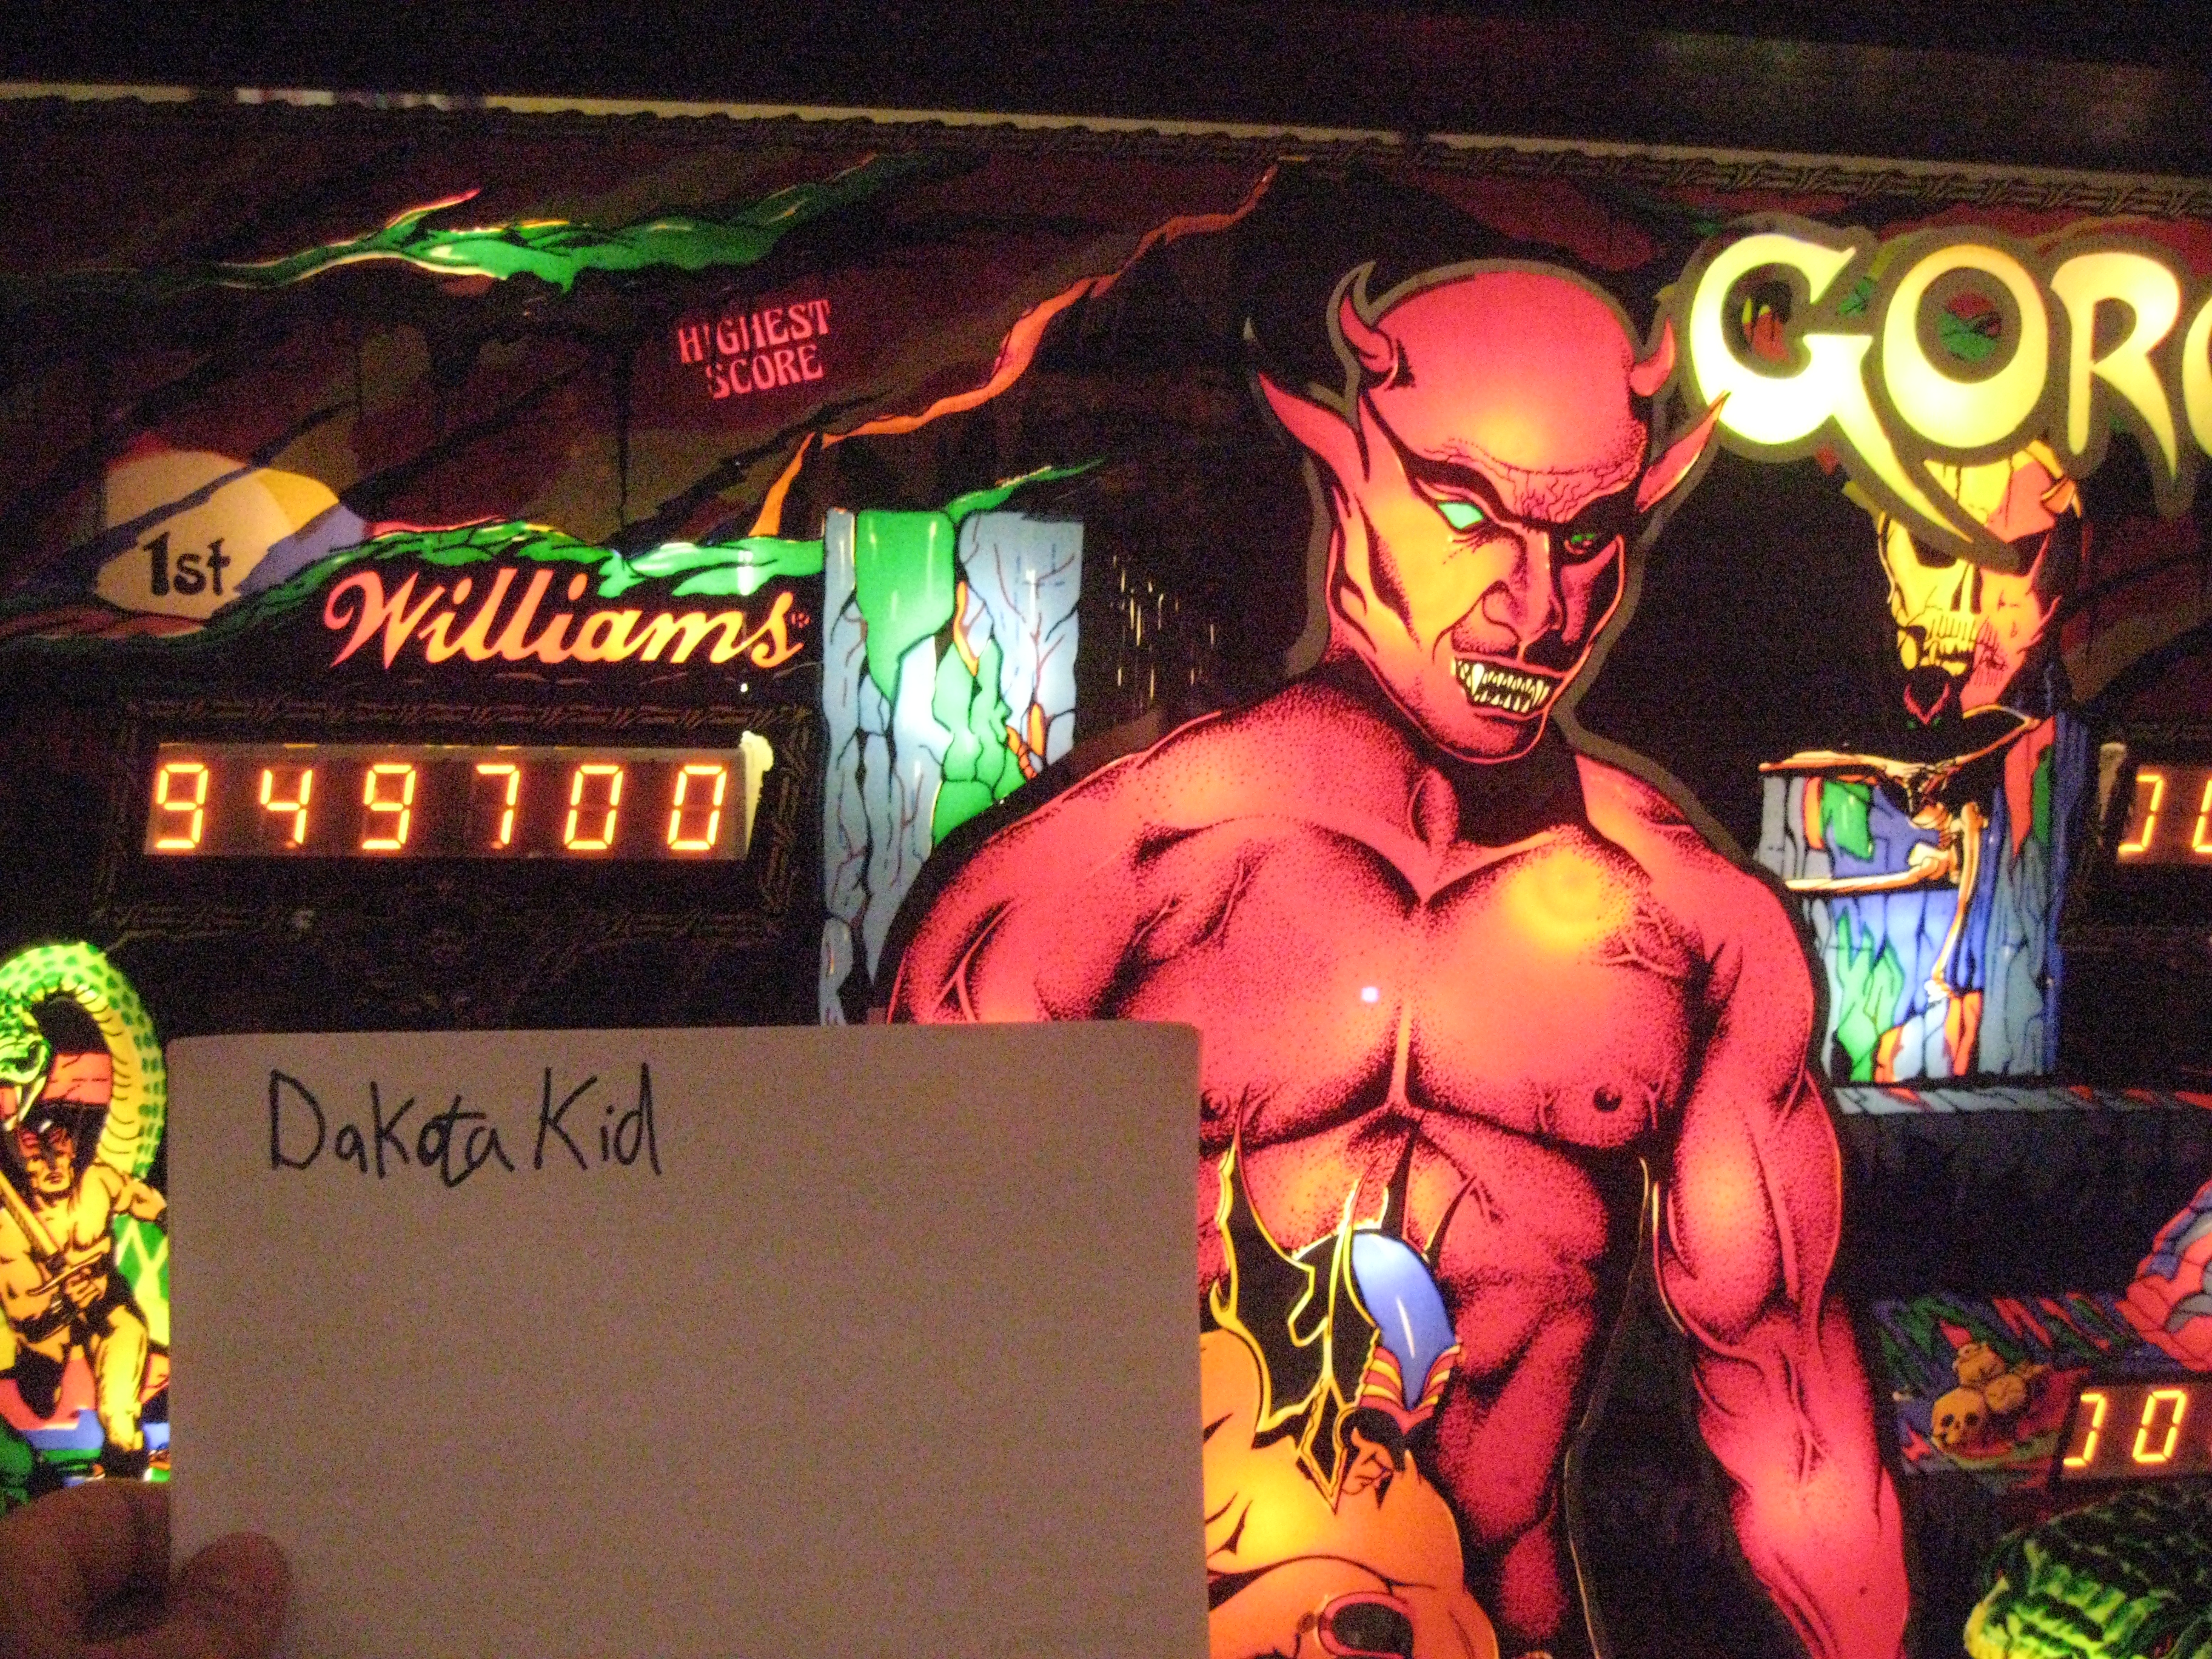 DakotaKid: Gorgar (Pinball: 3 Balls) 949,700 points on 2015-01-22 21:42:25